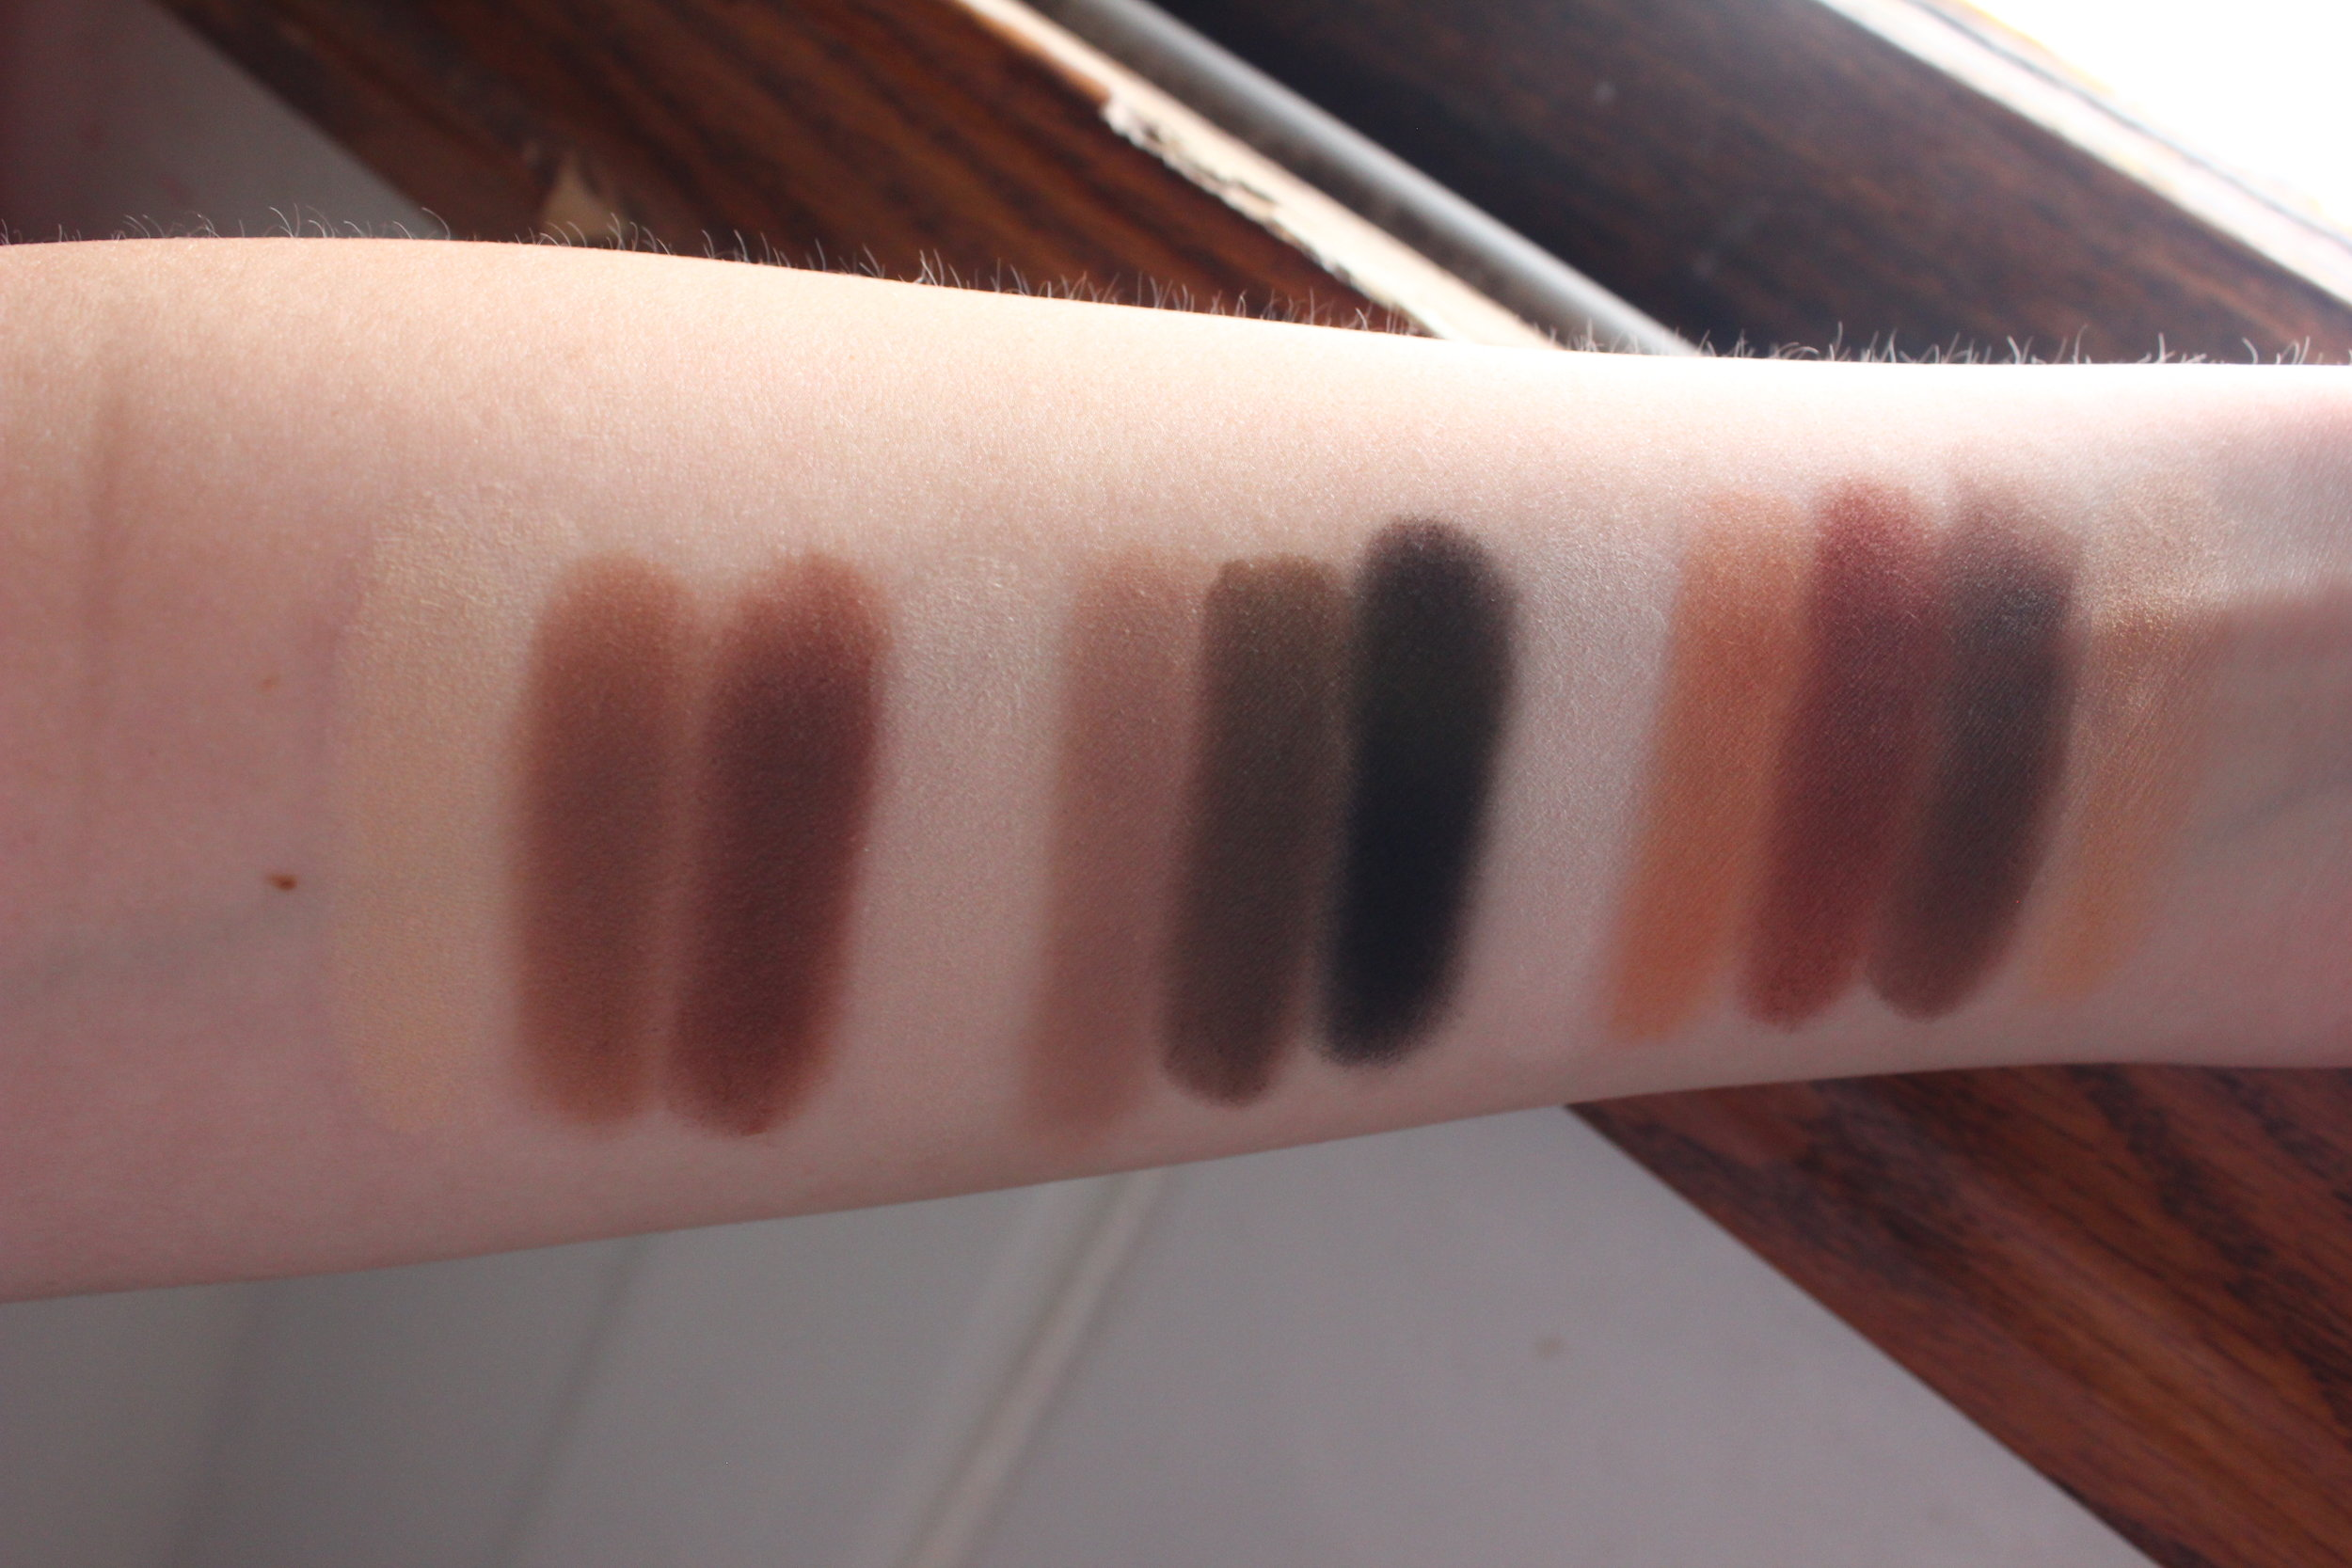 kat von d shade & light eye palette swatches in daylight